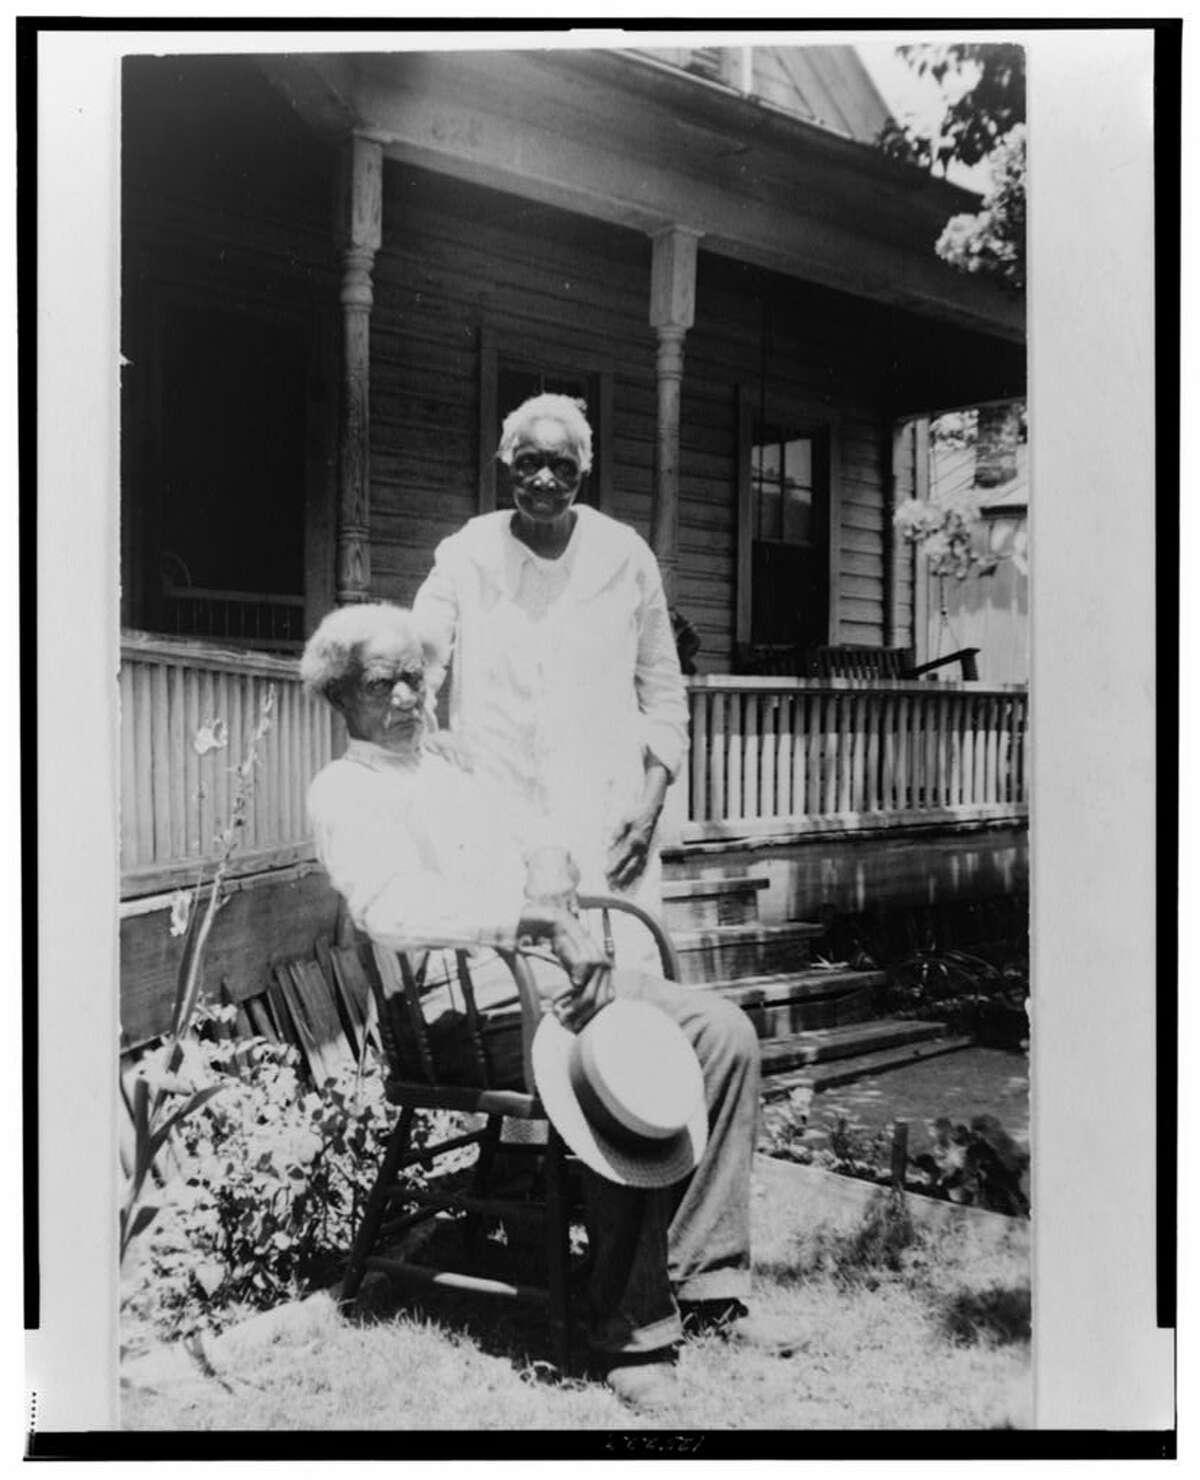 Former slave James Green - pictured here on June 25, 1937 - lived at 323 N. Olive St., according to slave narratives compiled by the U.S. Works Progress Administration.